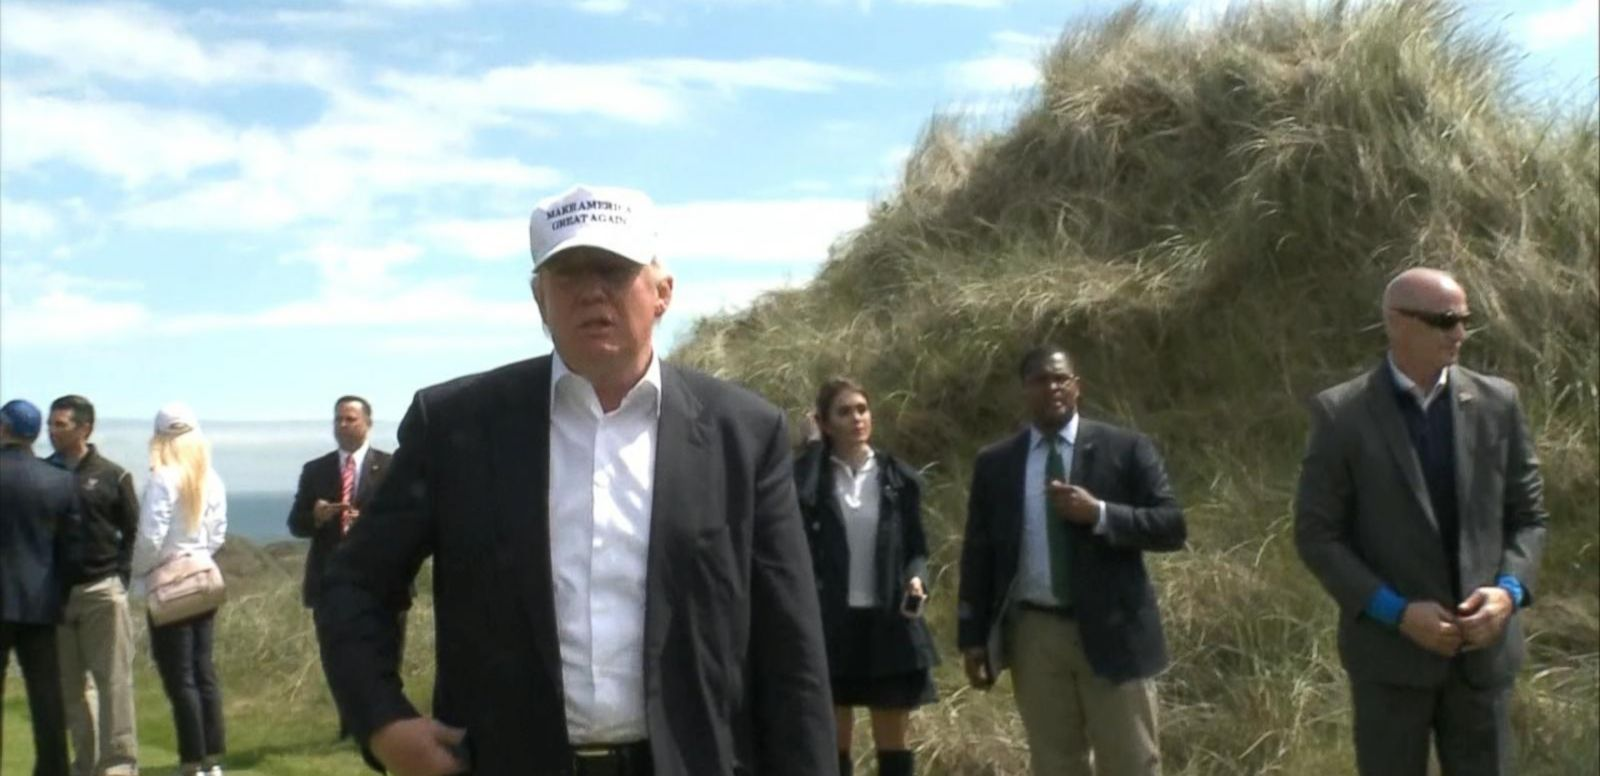 VIDEO: Trump Blasts Clinton at His Newly Re-Opened Golf Course in Scotland